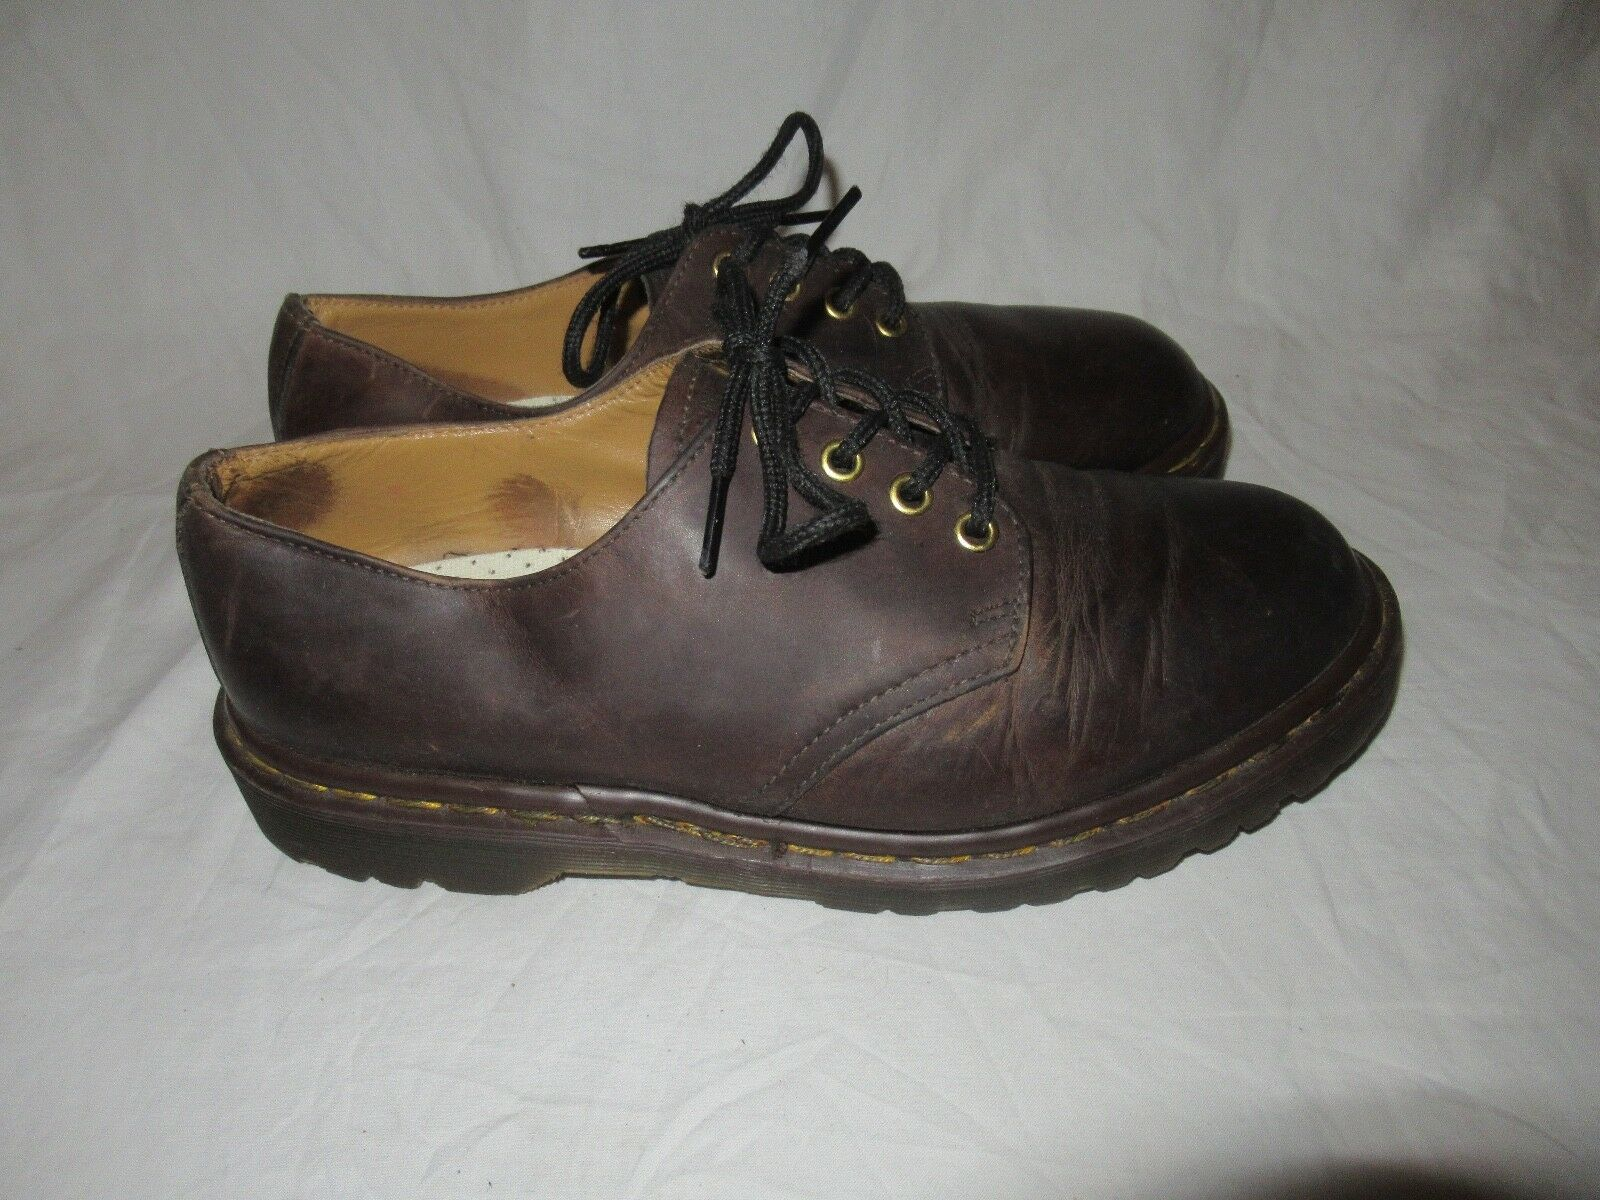 Scarpe casual da uomo  Vtg Dr Martens Docs Brown Leather Oxford Shoes uomos 9 Wouomos 10 England